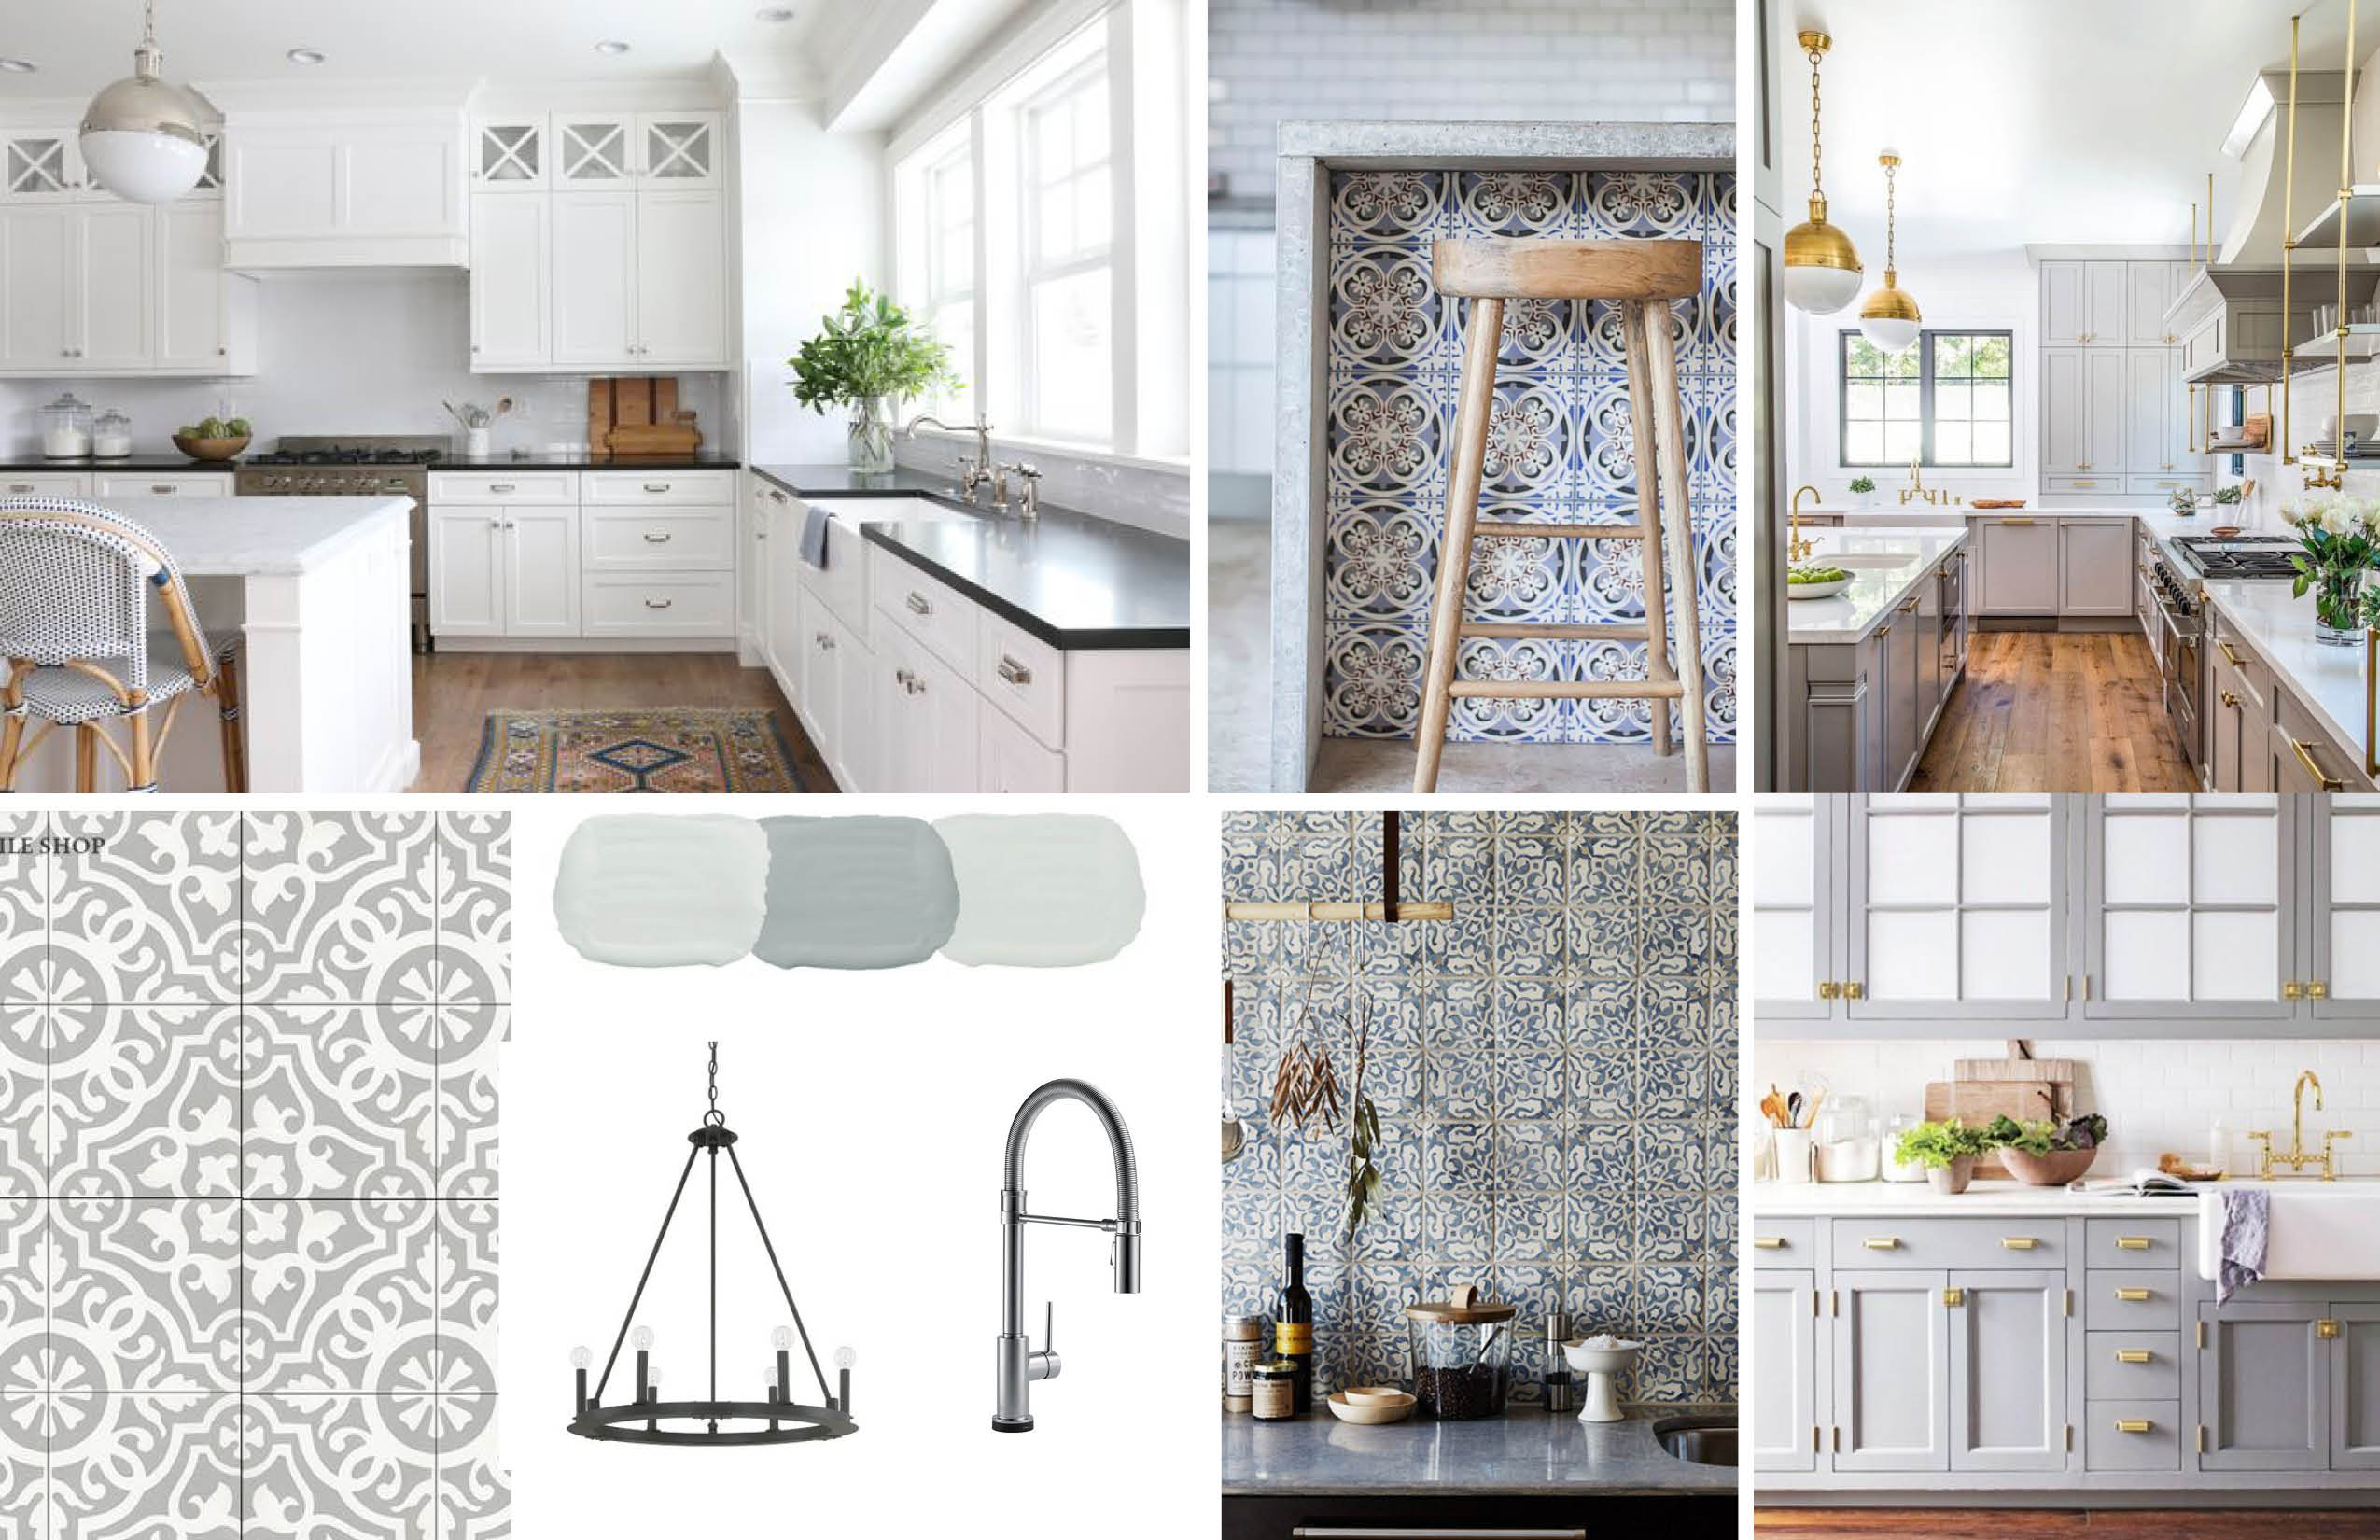 WD X Delta Faucet Kitchen Moodboard Design Wit Amp Delight